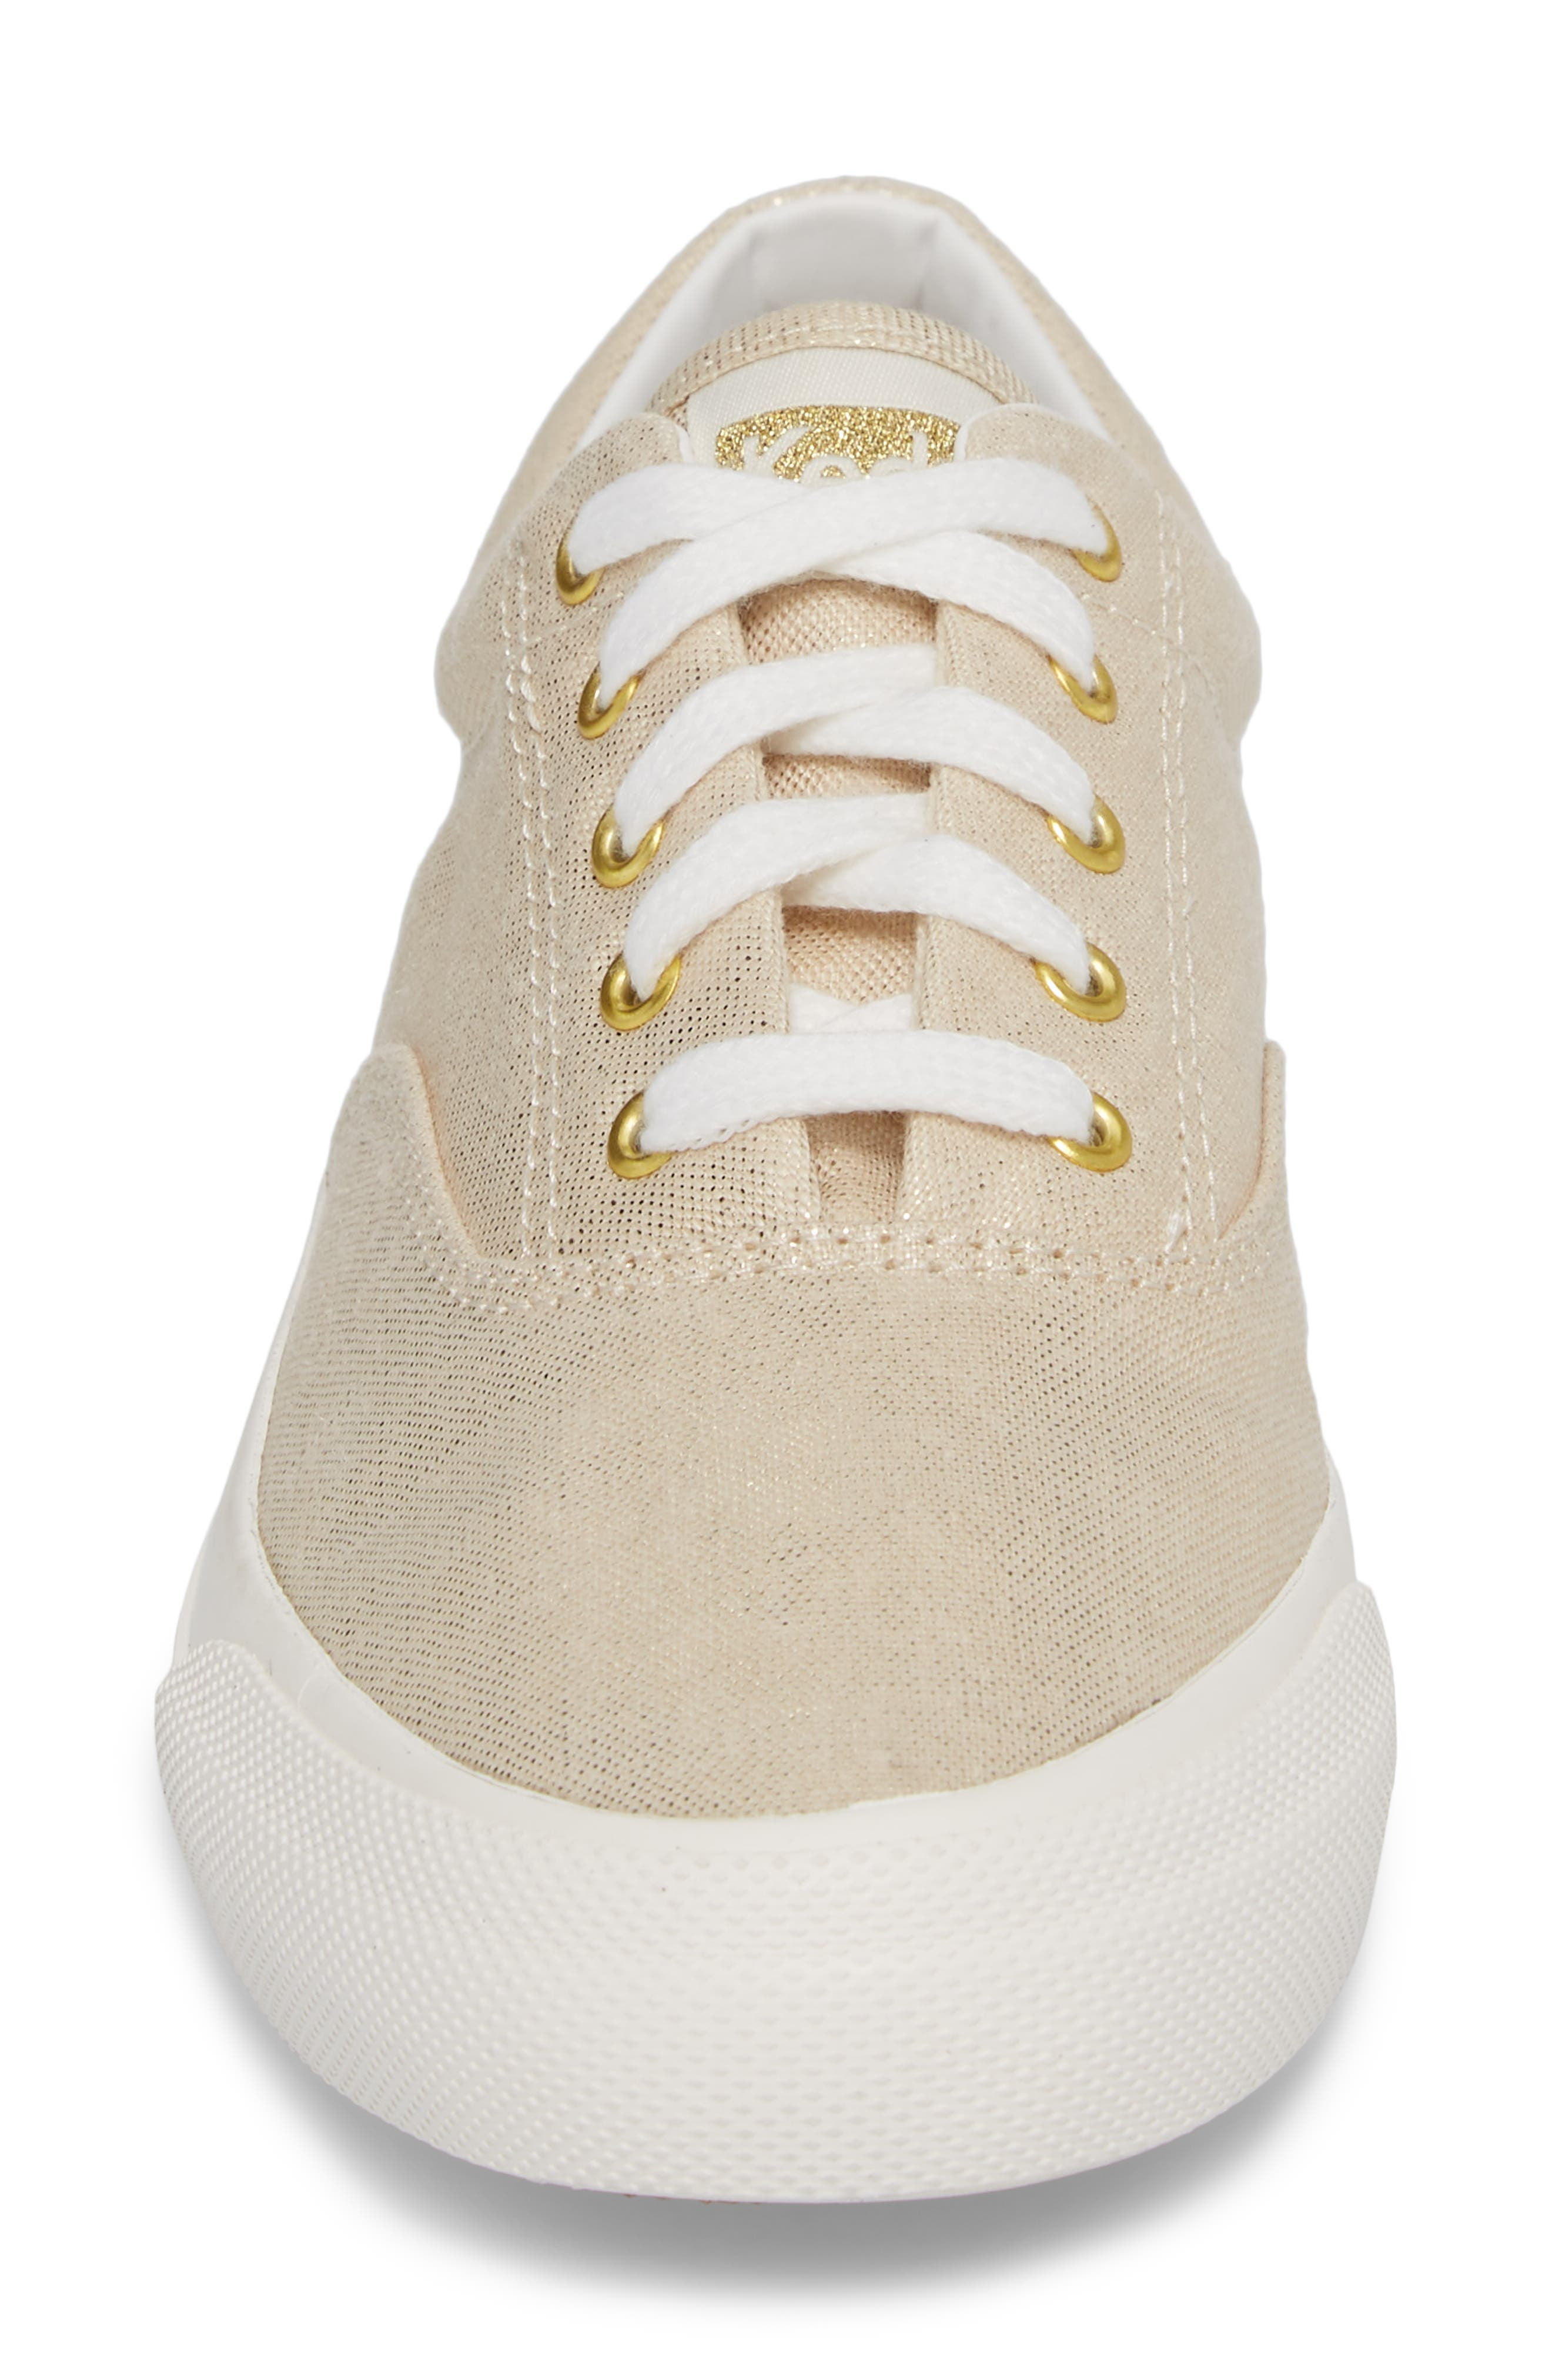 Anchor Metallic Linen Sneaker,                             Alternate thumbnail 4, color,                             710